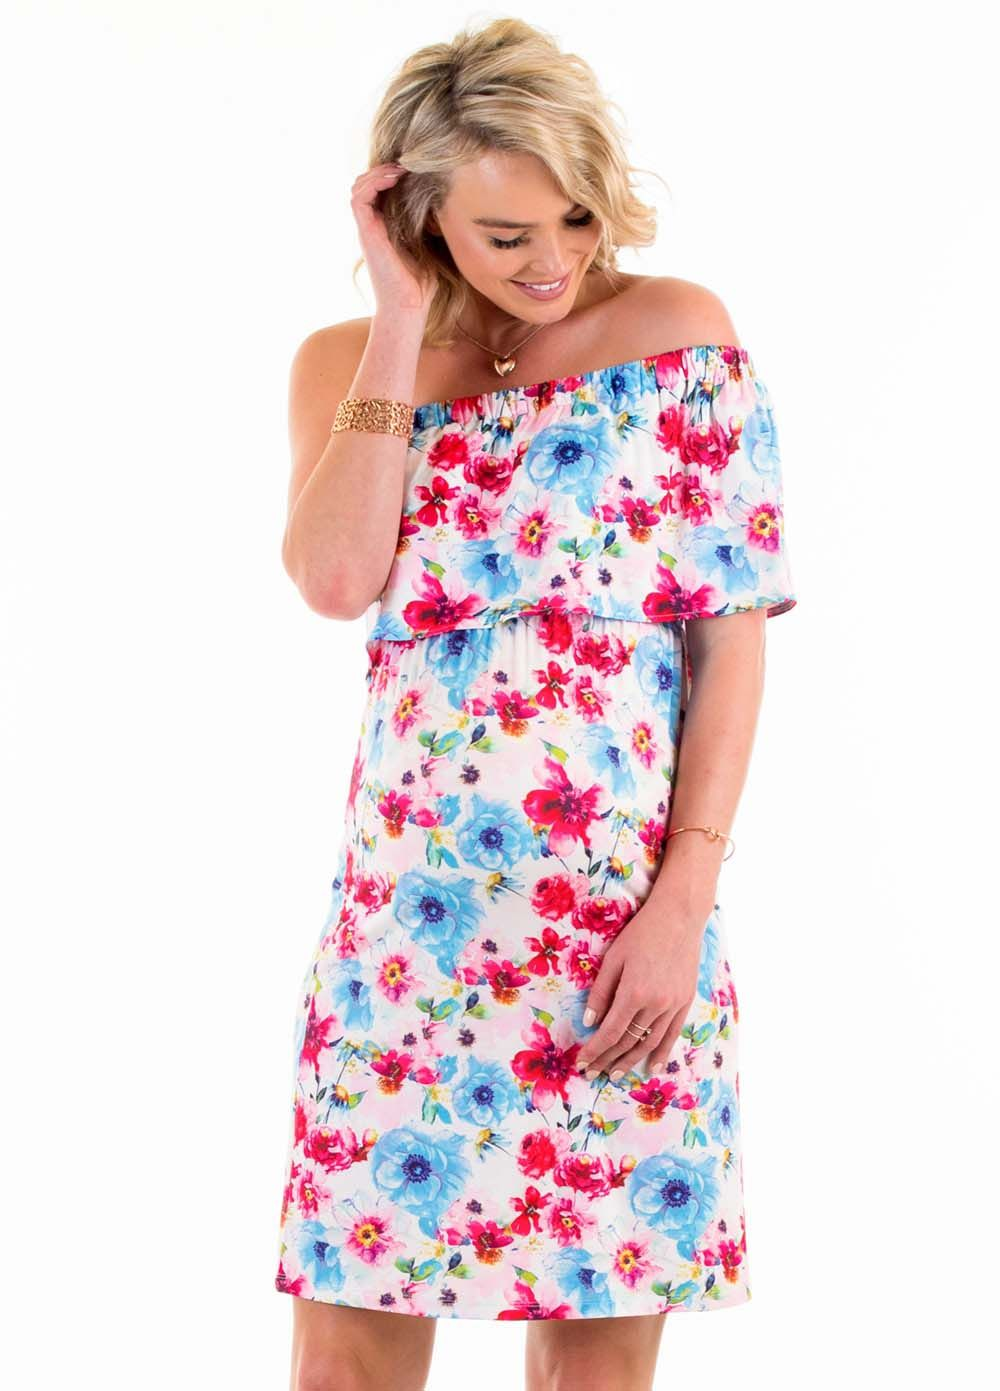 12291c0bef3f8 Floressa - Clara Nursing Dress | Clothes | Fashion, Nursing dress ...